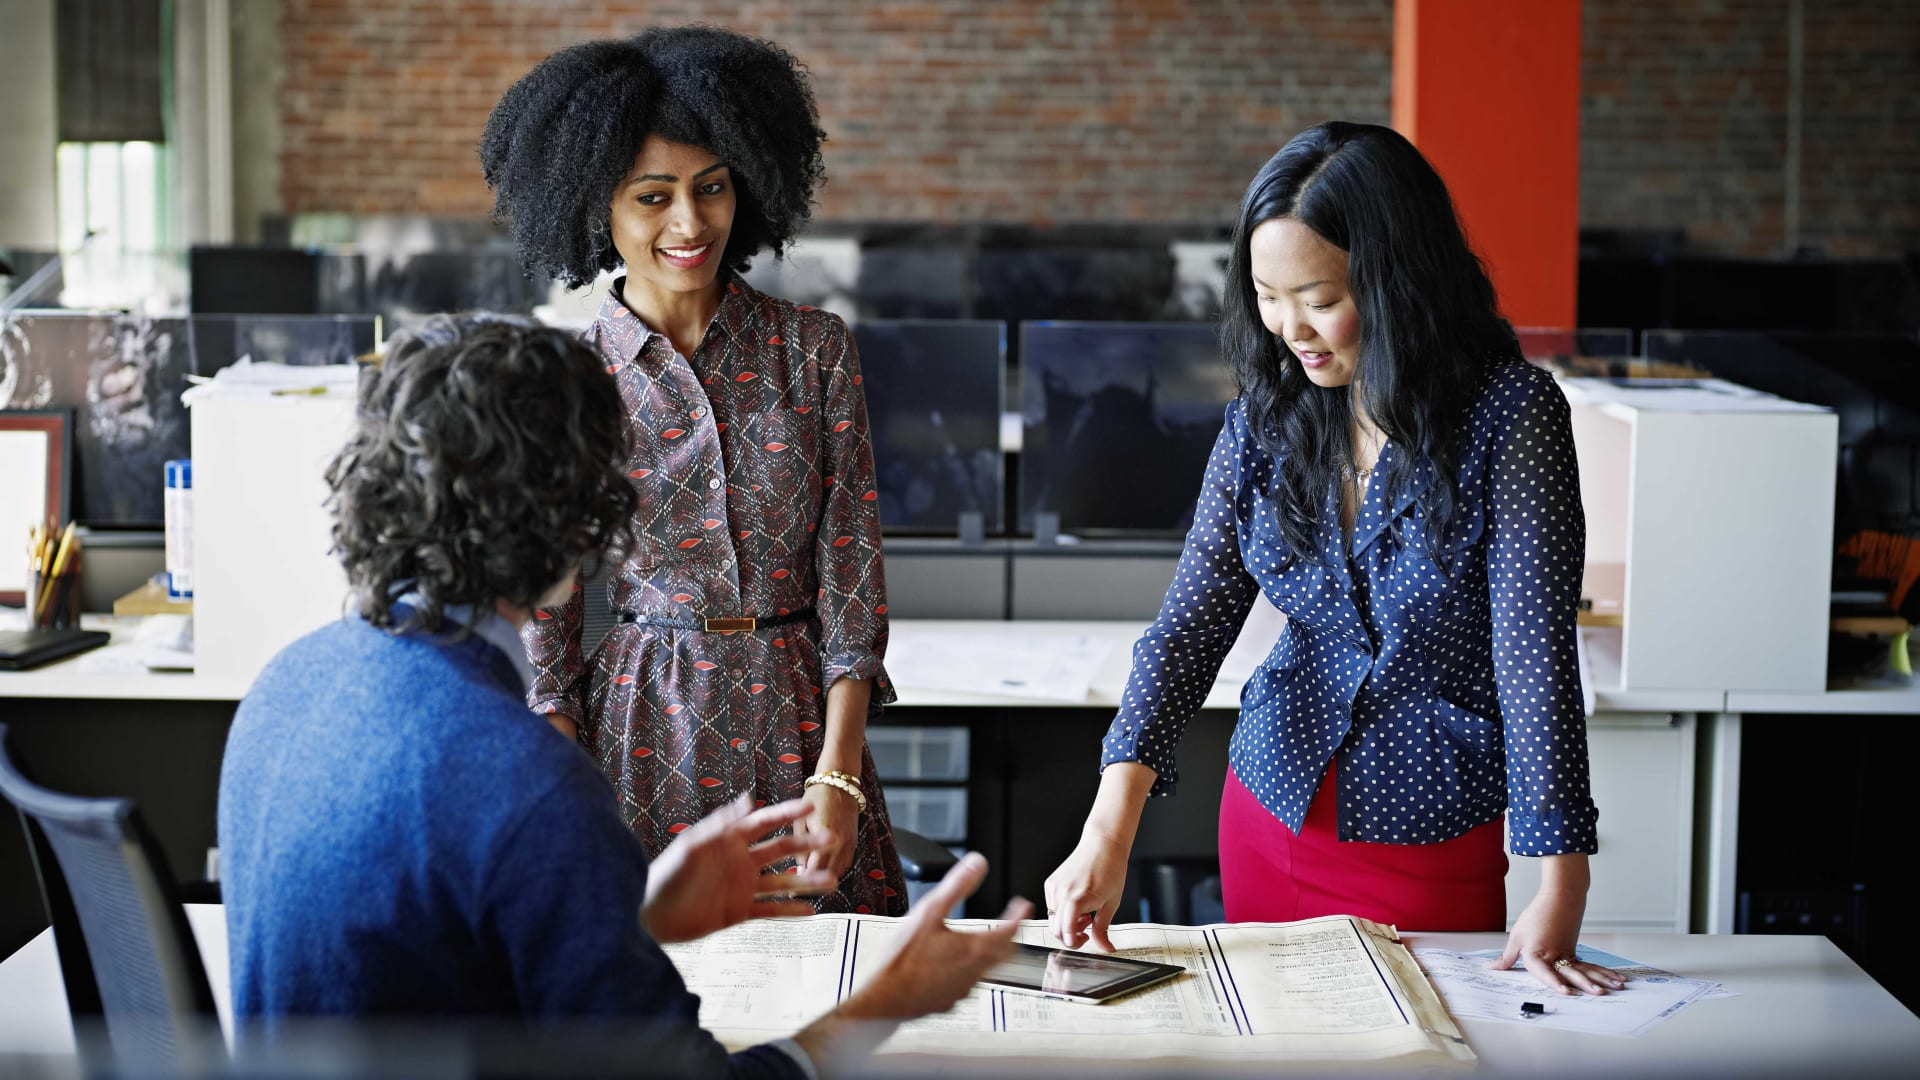 5 Things Leaders Can Do to Support Women in the Workplace